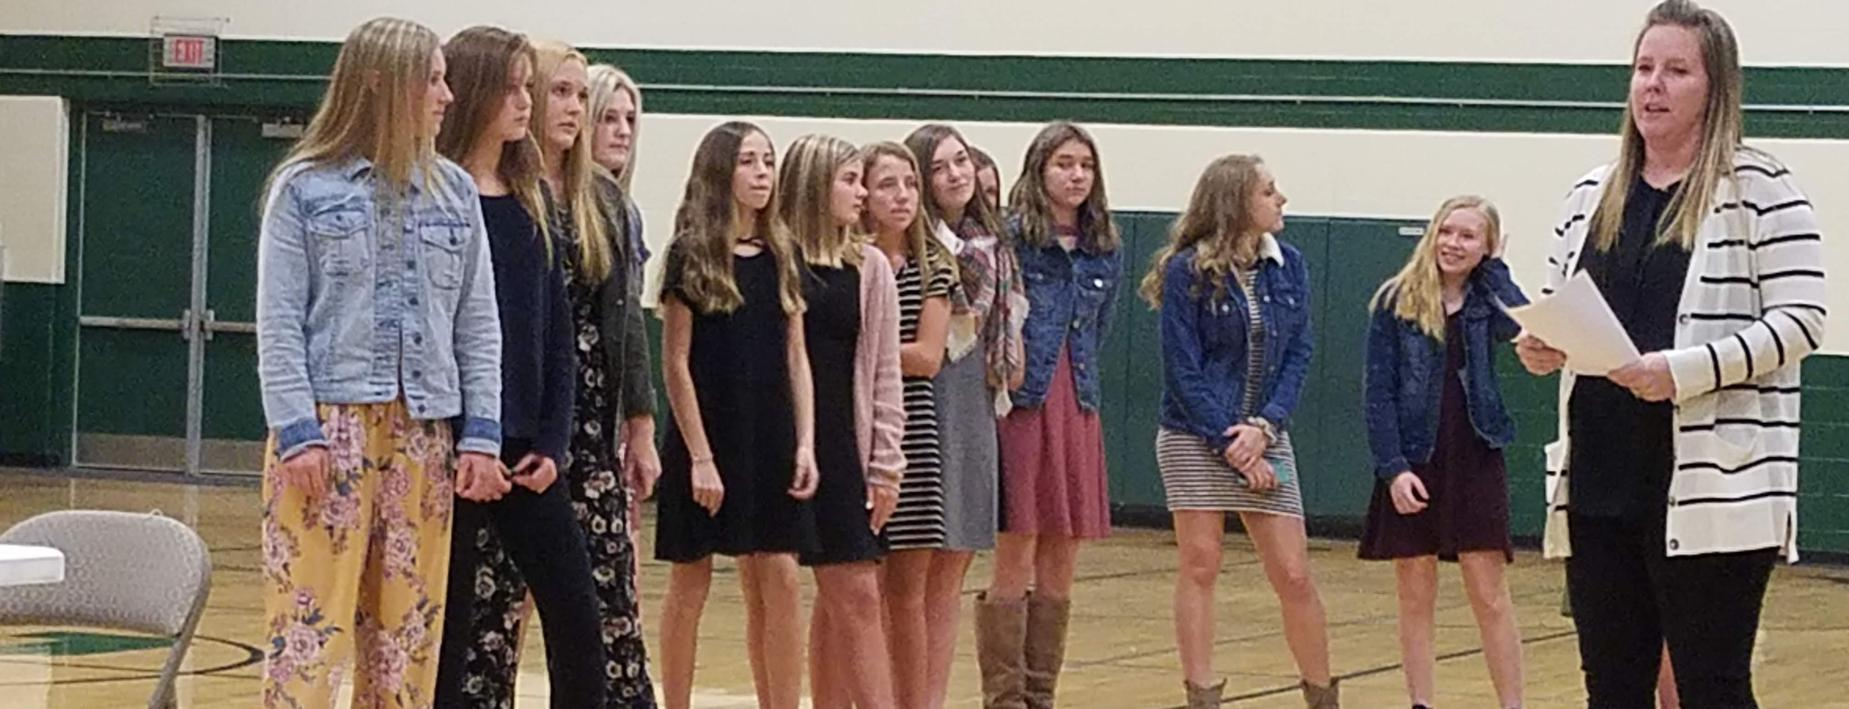 MS Volleyball Team Honored at Board Meeting